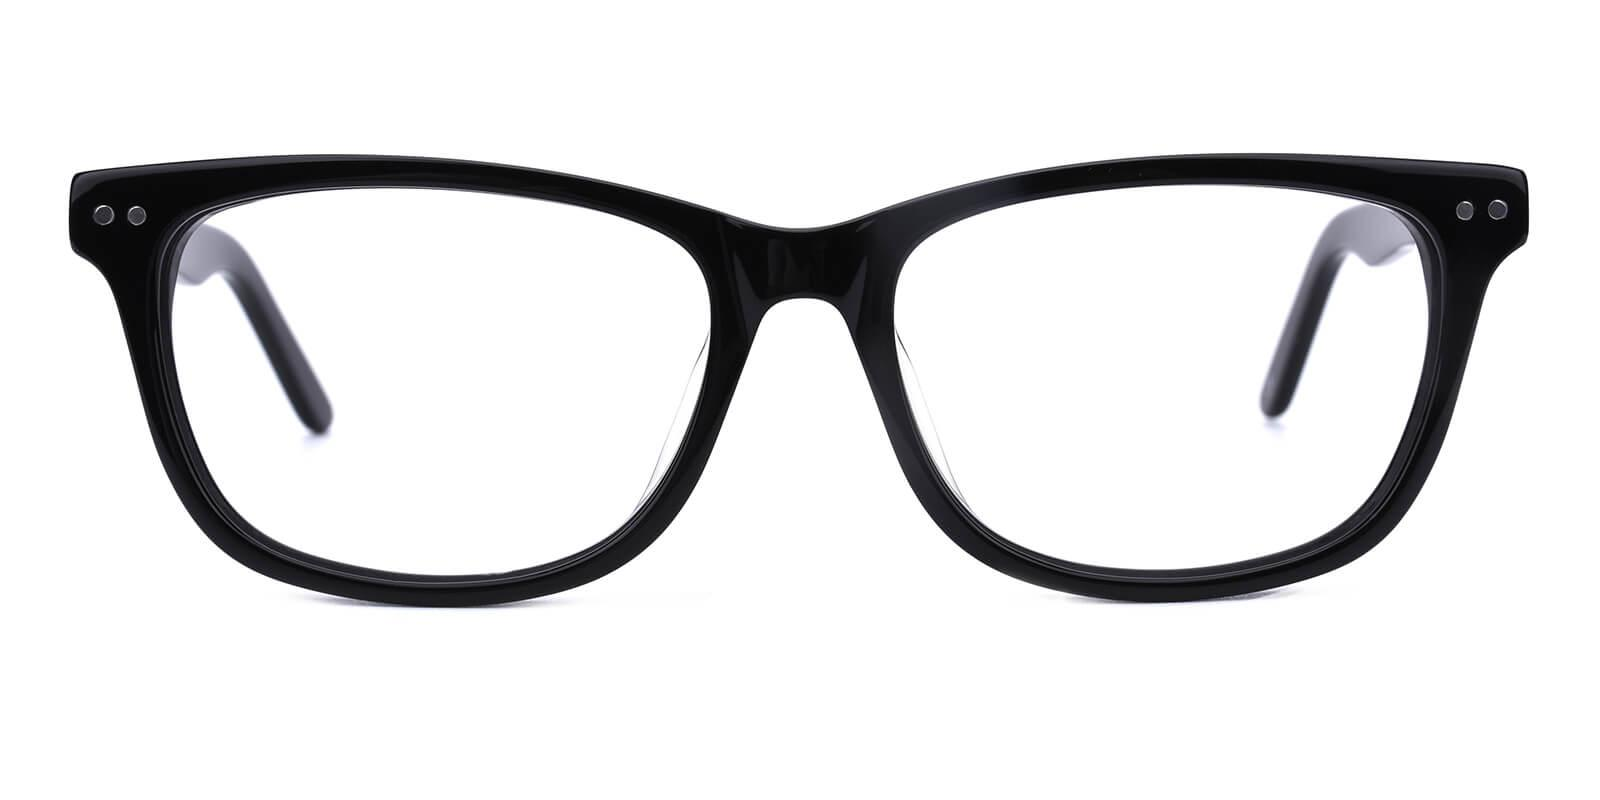 Prologue-Black-Rectangle-Acetate-Eyeglasses-additional2